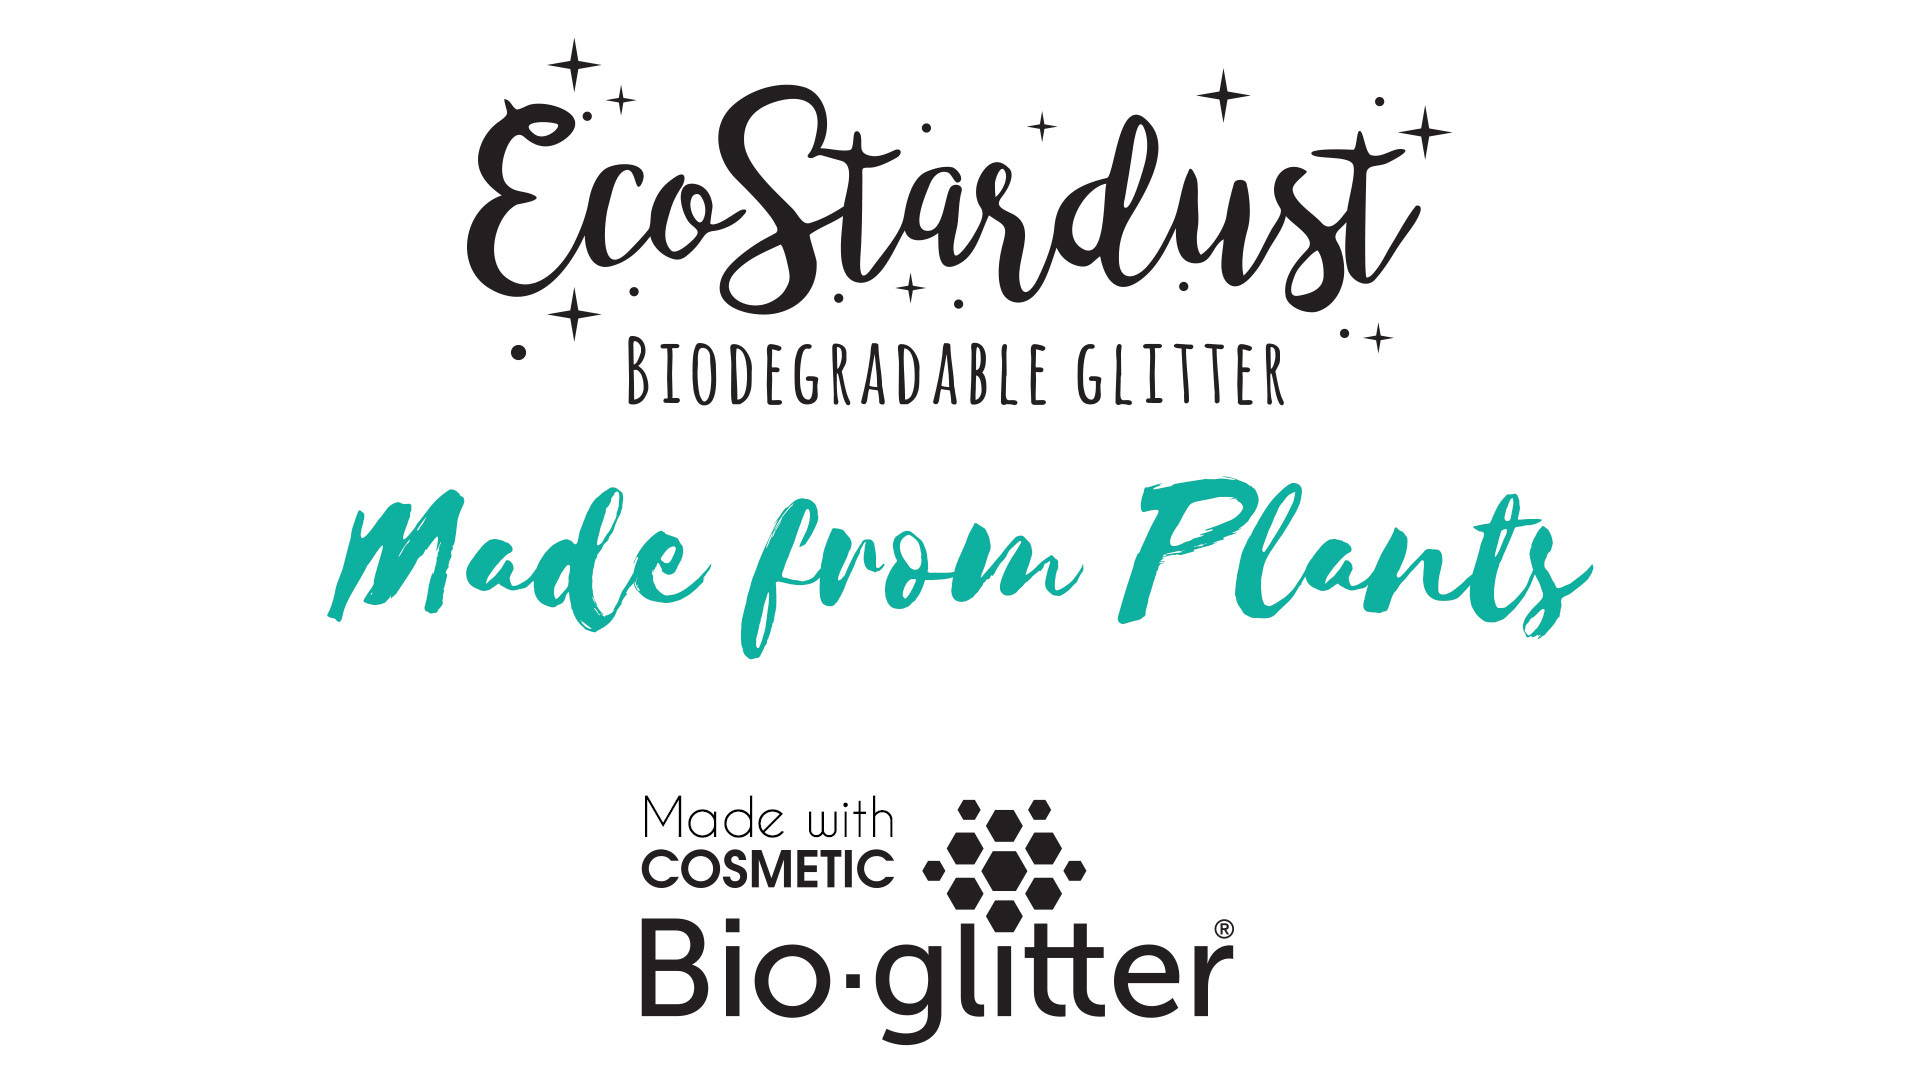 About EcoStardust Biodegradable Glitter